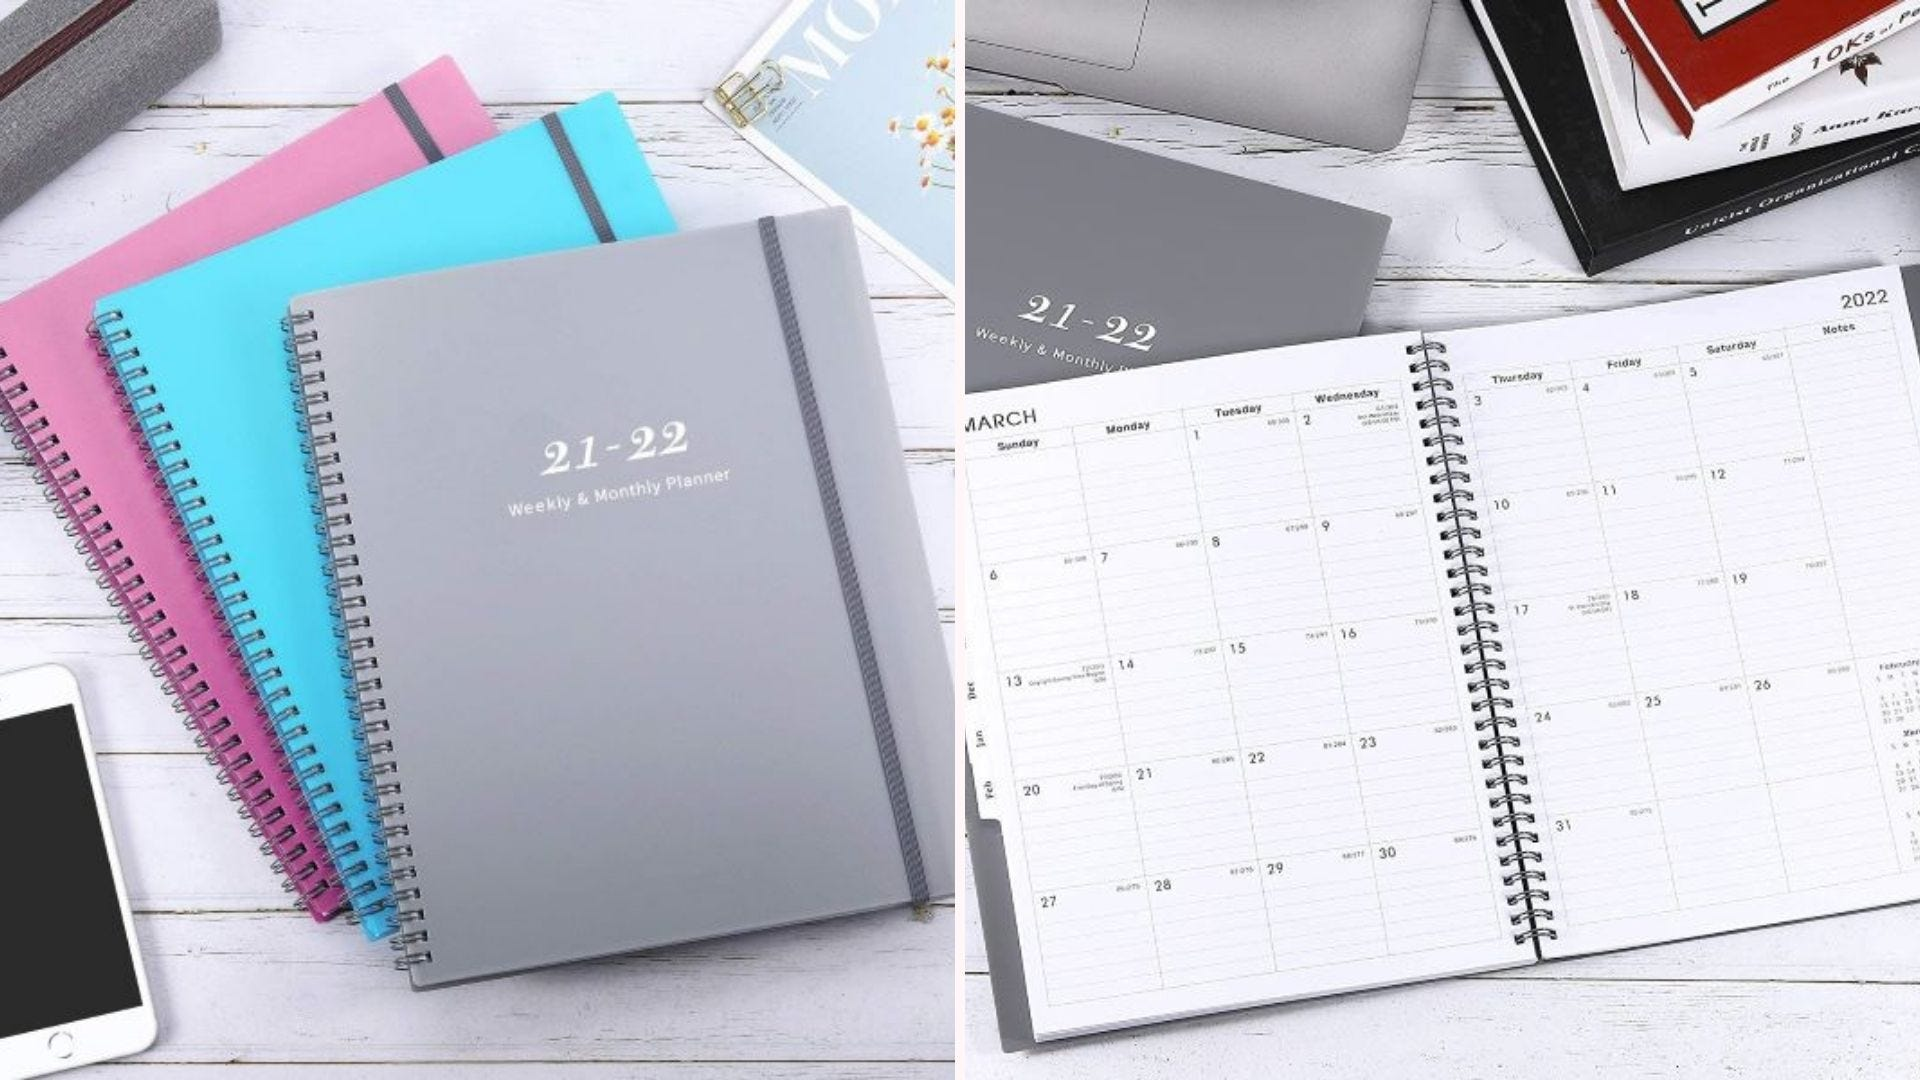 Maalbok 2021-22 planners in gray, green, and pink.